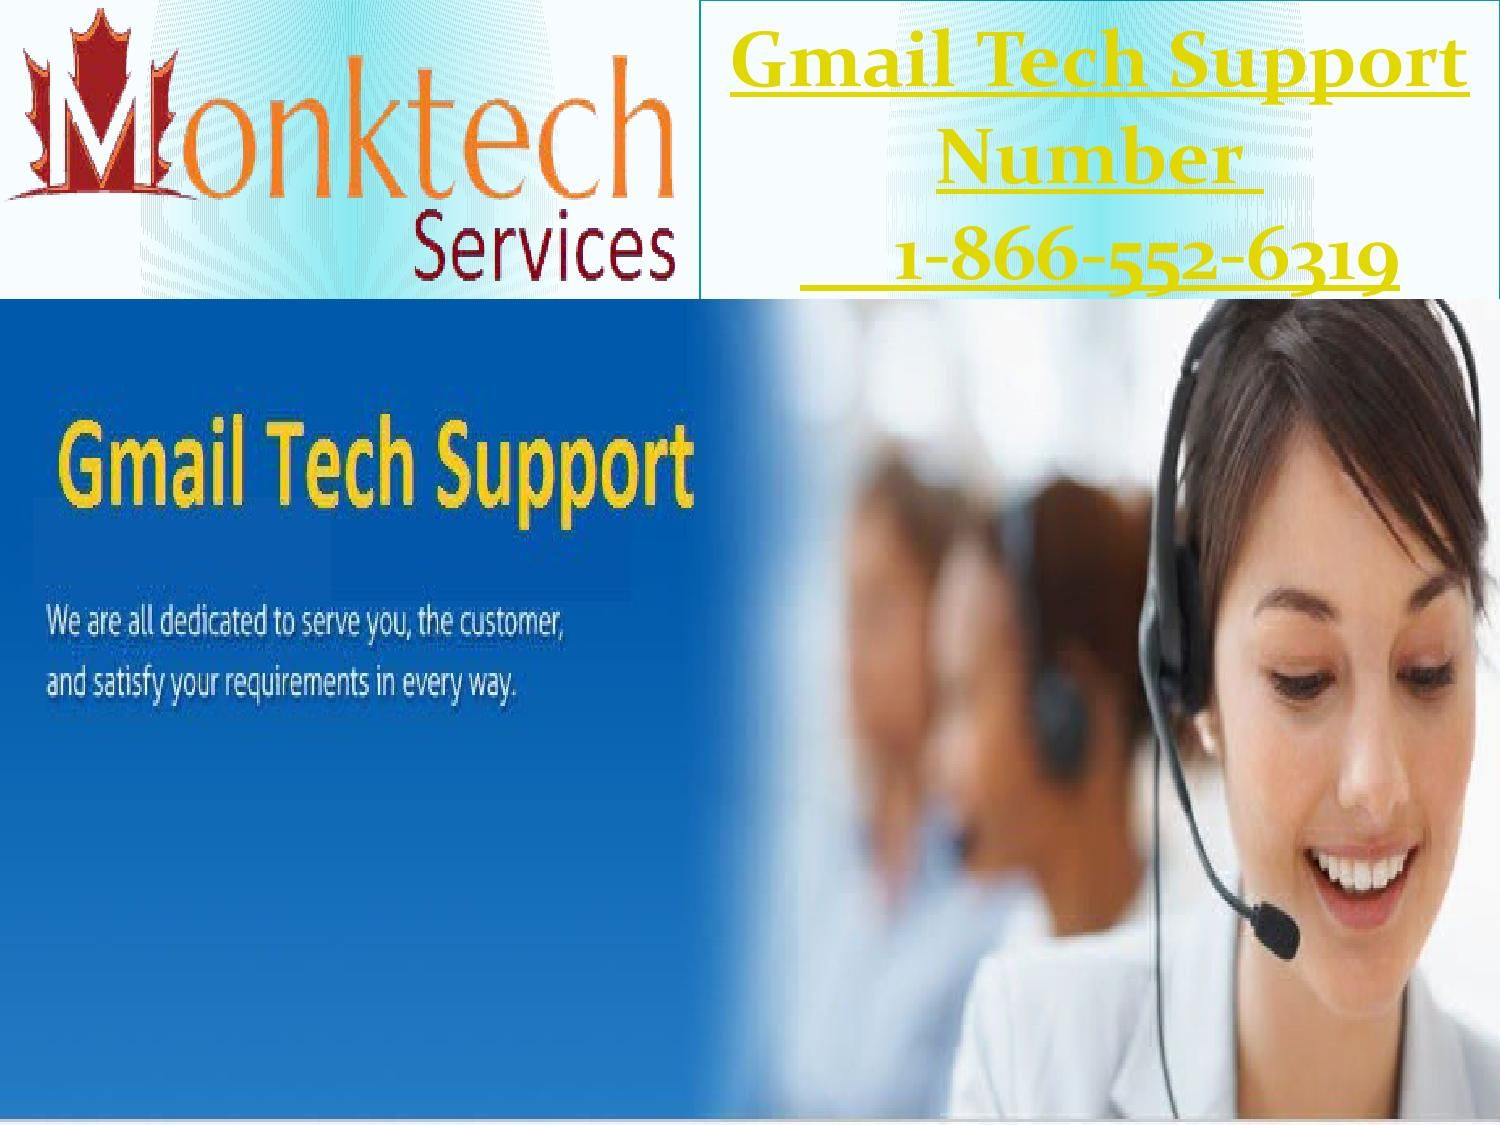 Call for gmail tech support number 1 866 552 6319